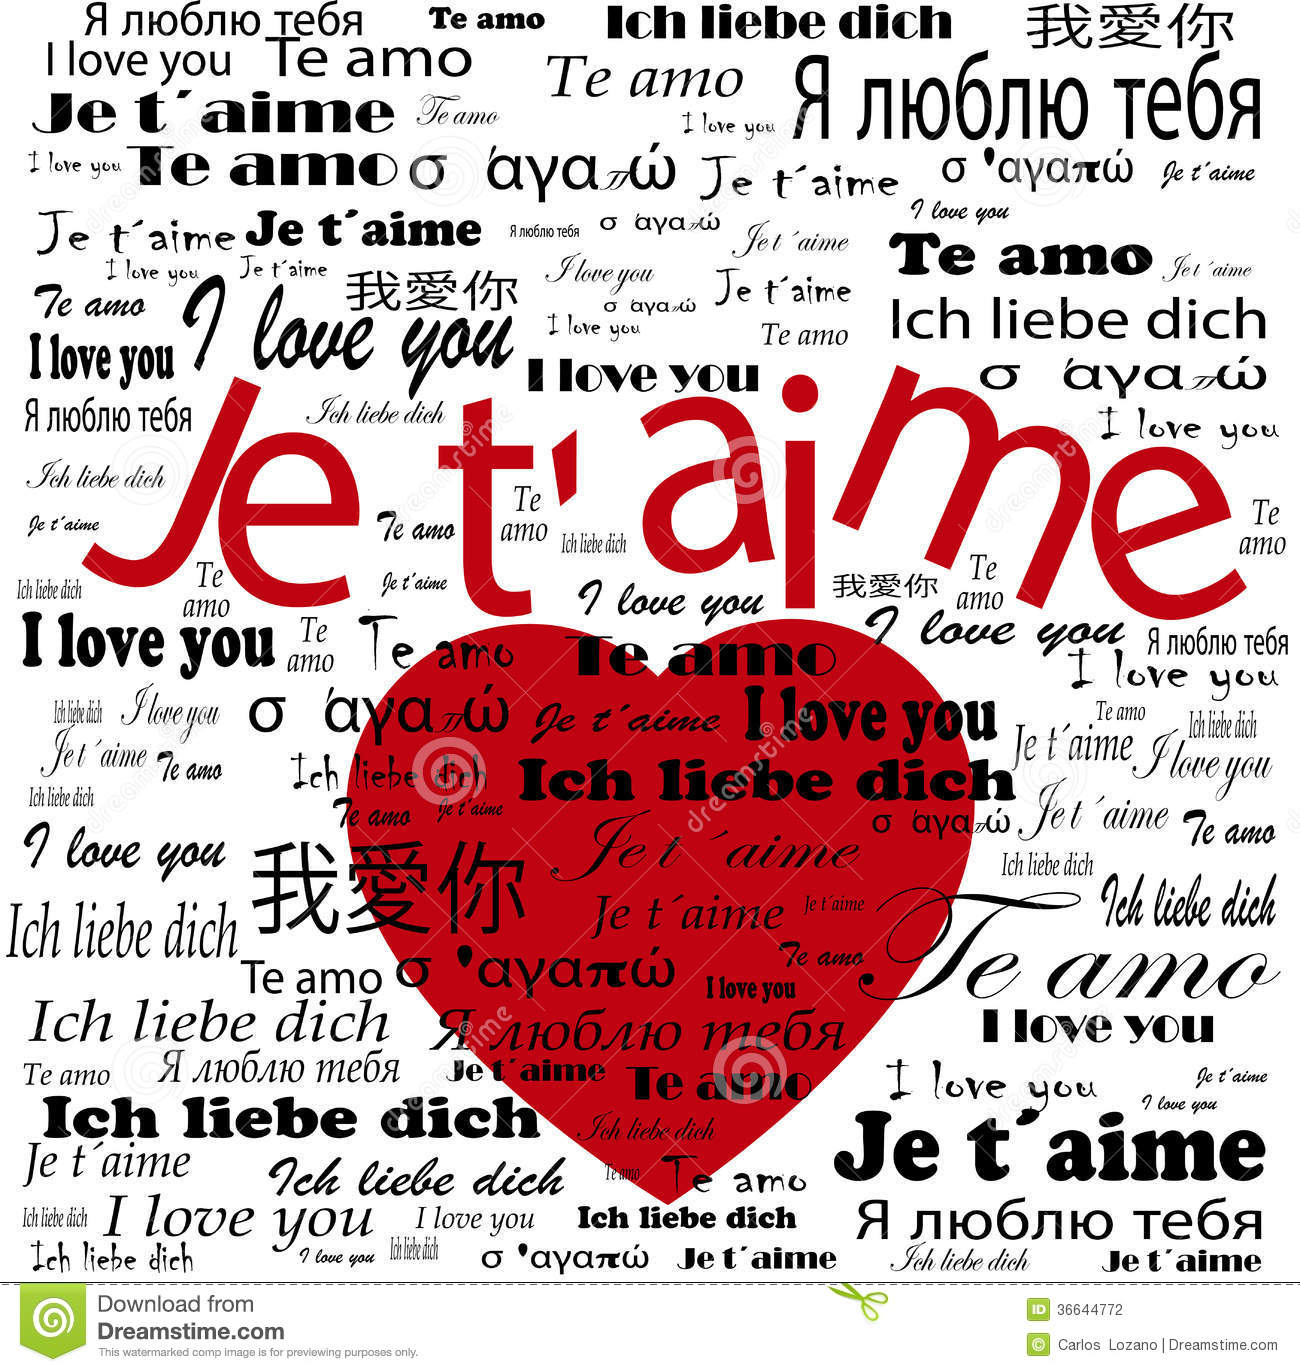 I love you in other languages written